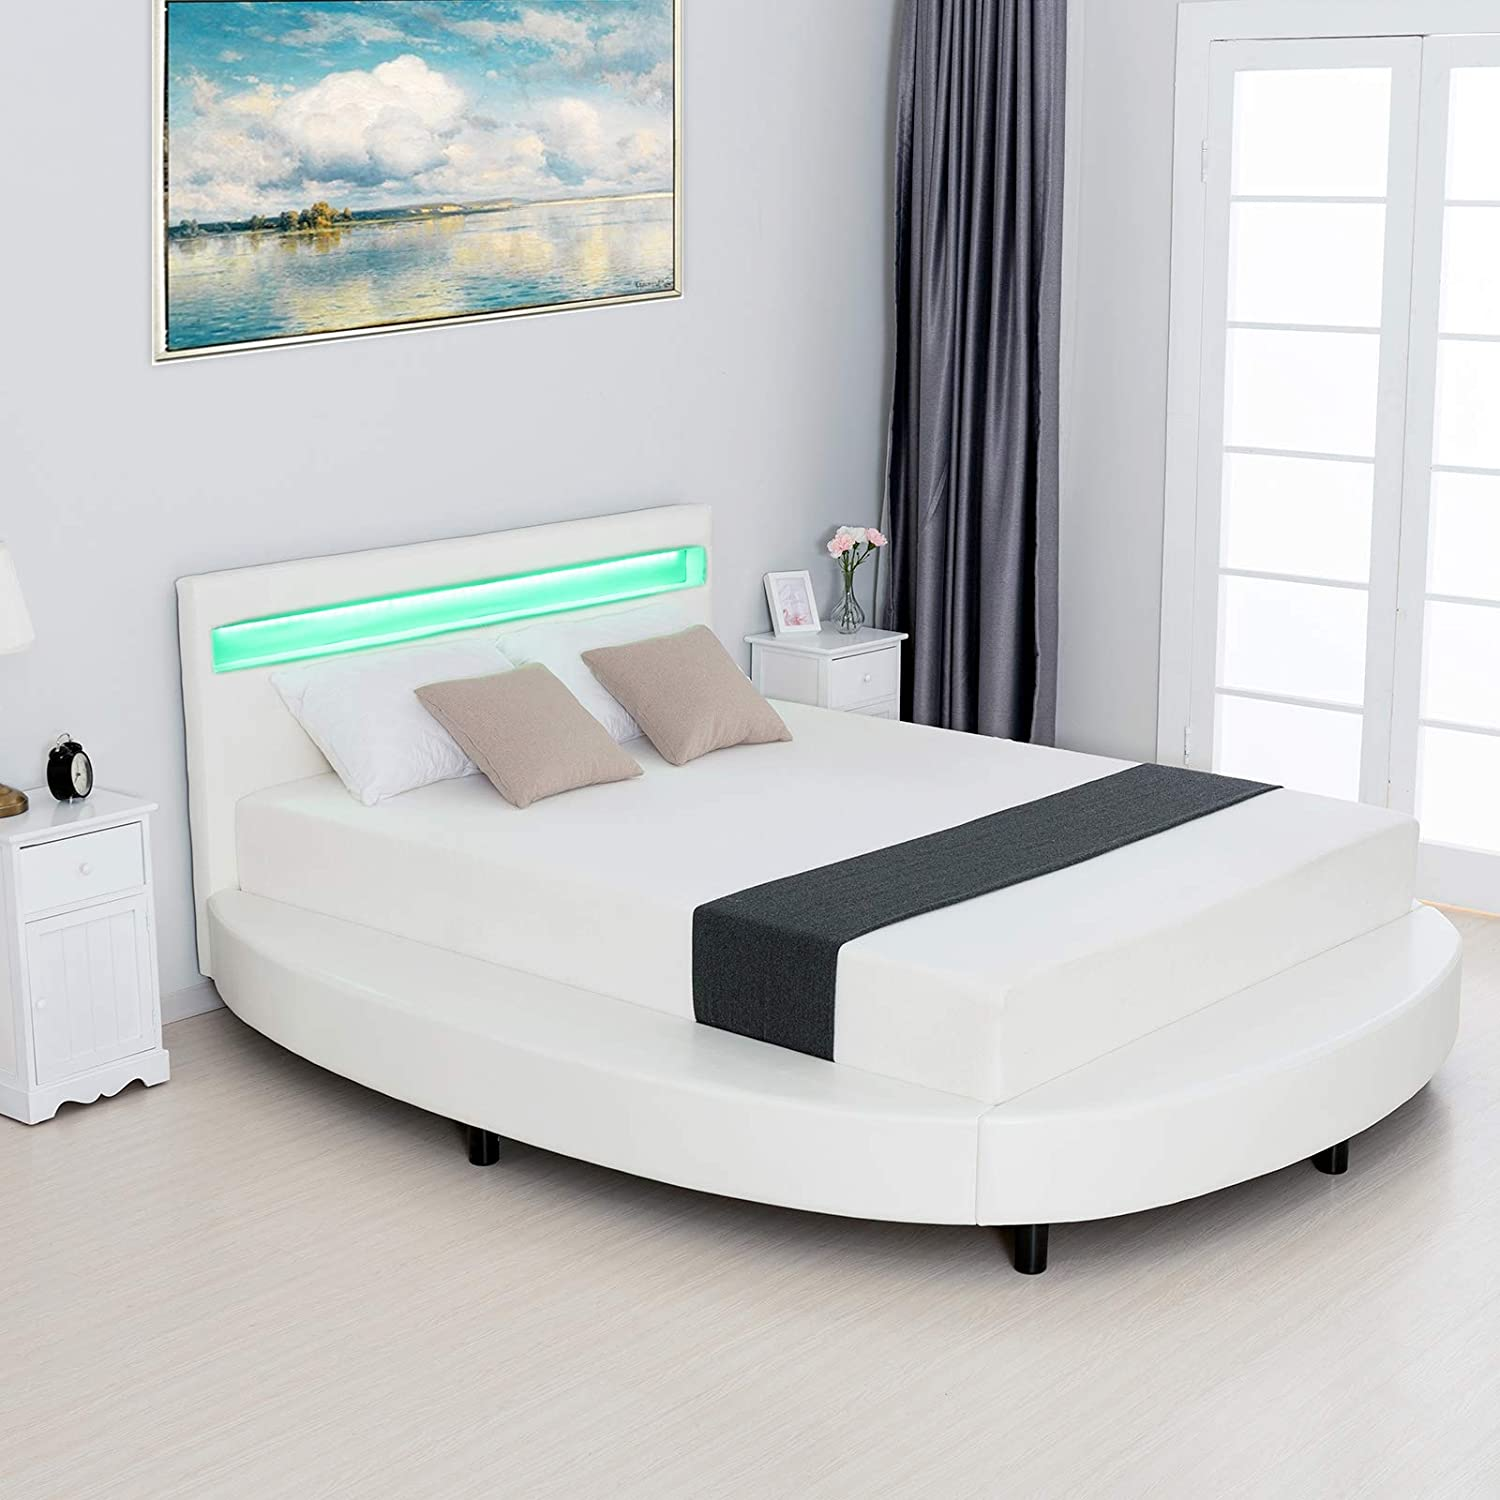 LAGRIMA Modern Upholstered Round Platform Bed with LED Light Headboard, Faux Leather Bed Frame with 2.8-Inch Solid Wooden Slat Support, White, Queen Size